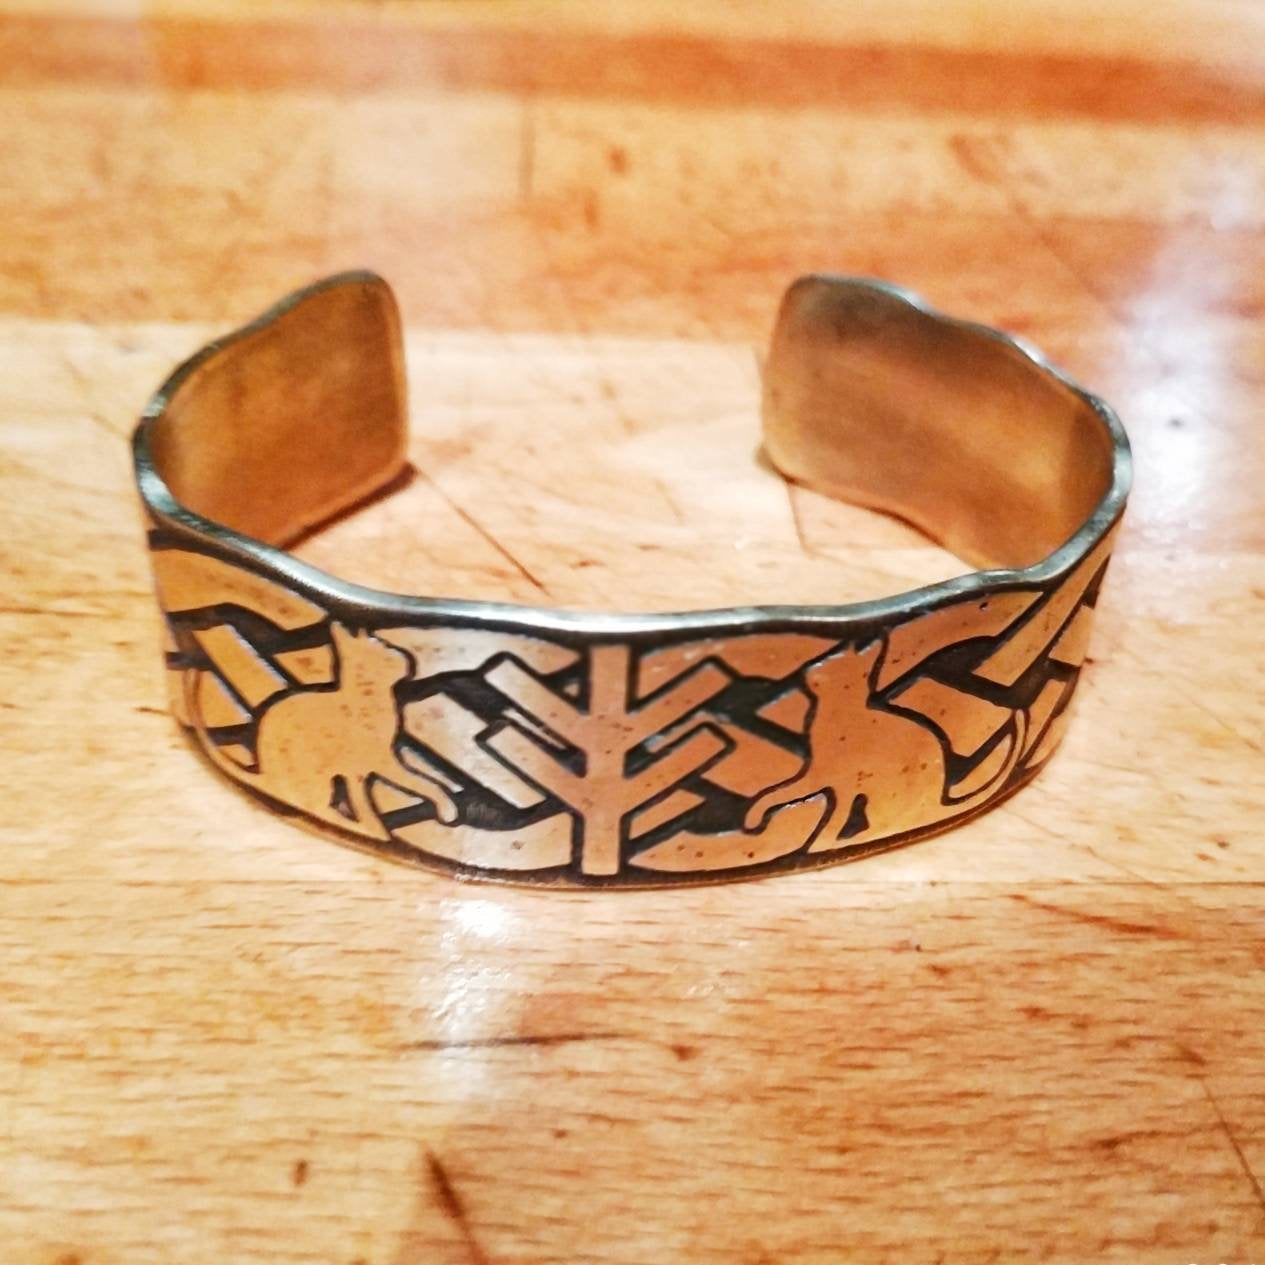 Freyja Fehu/Algiz Rune and Cats Cuff Bracelet in Copper or Brass Viking, Norse. Pagan Heathen Wedding Handfasting